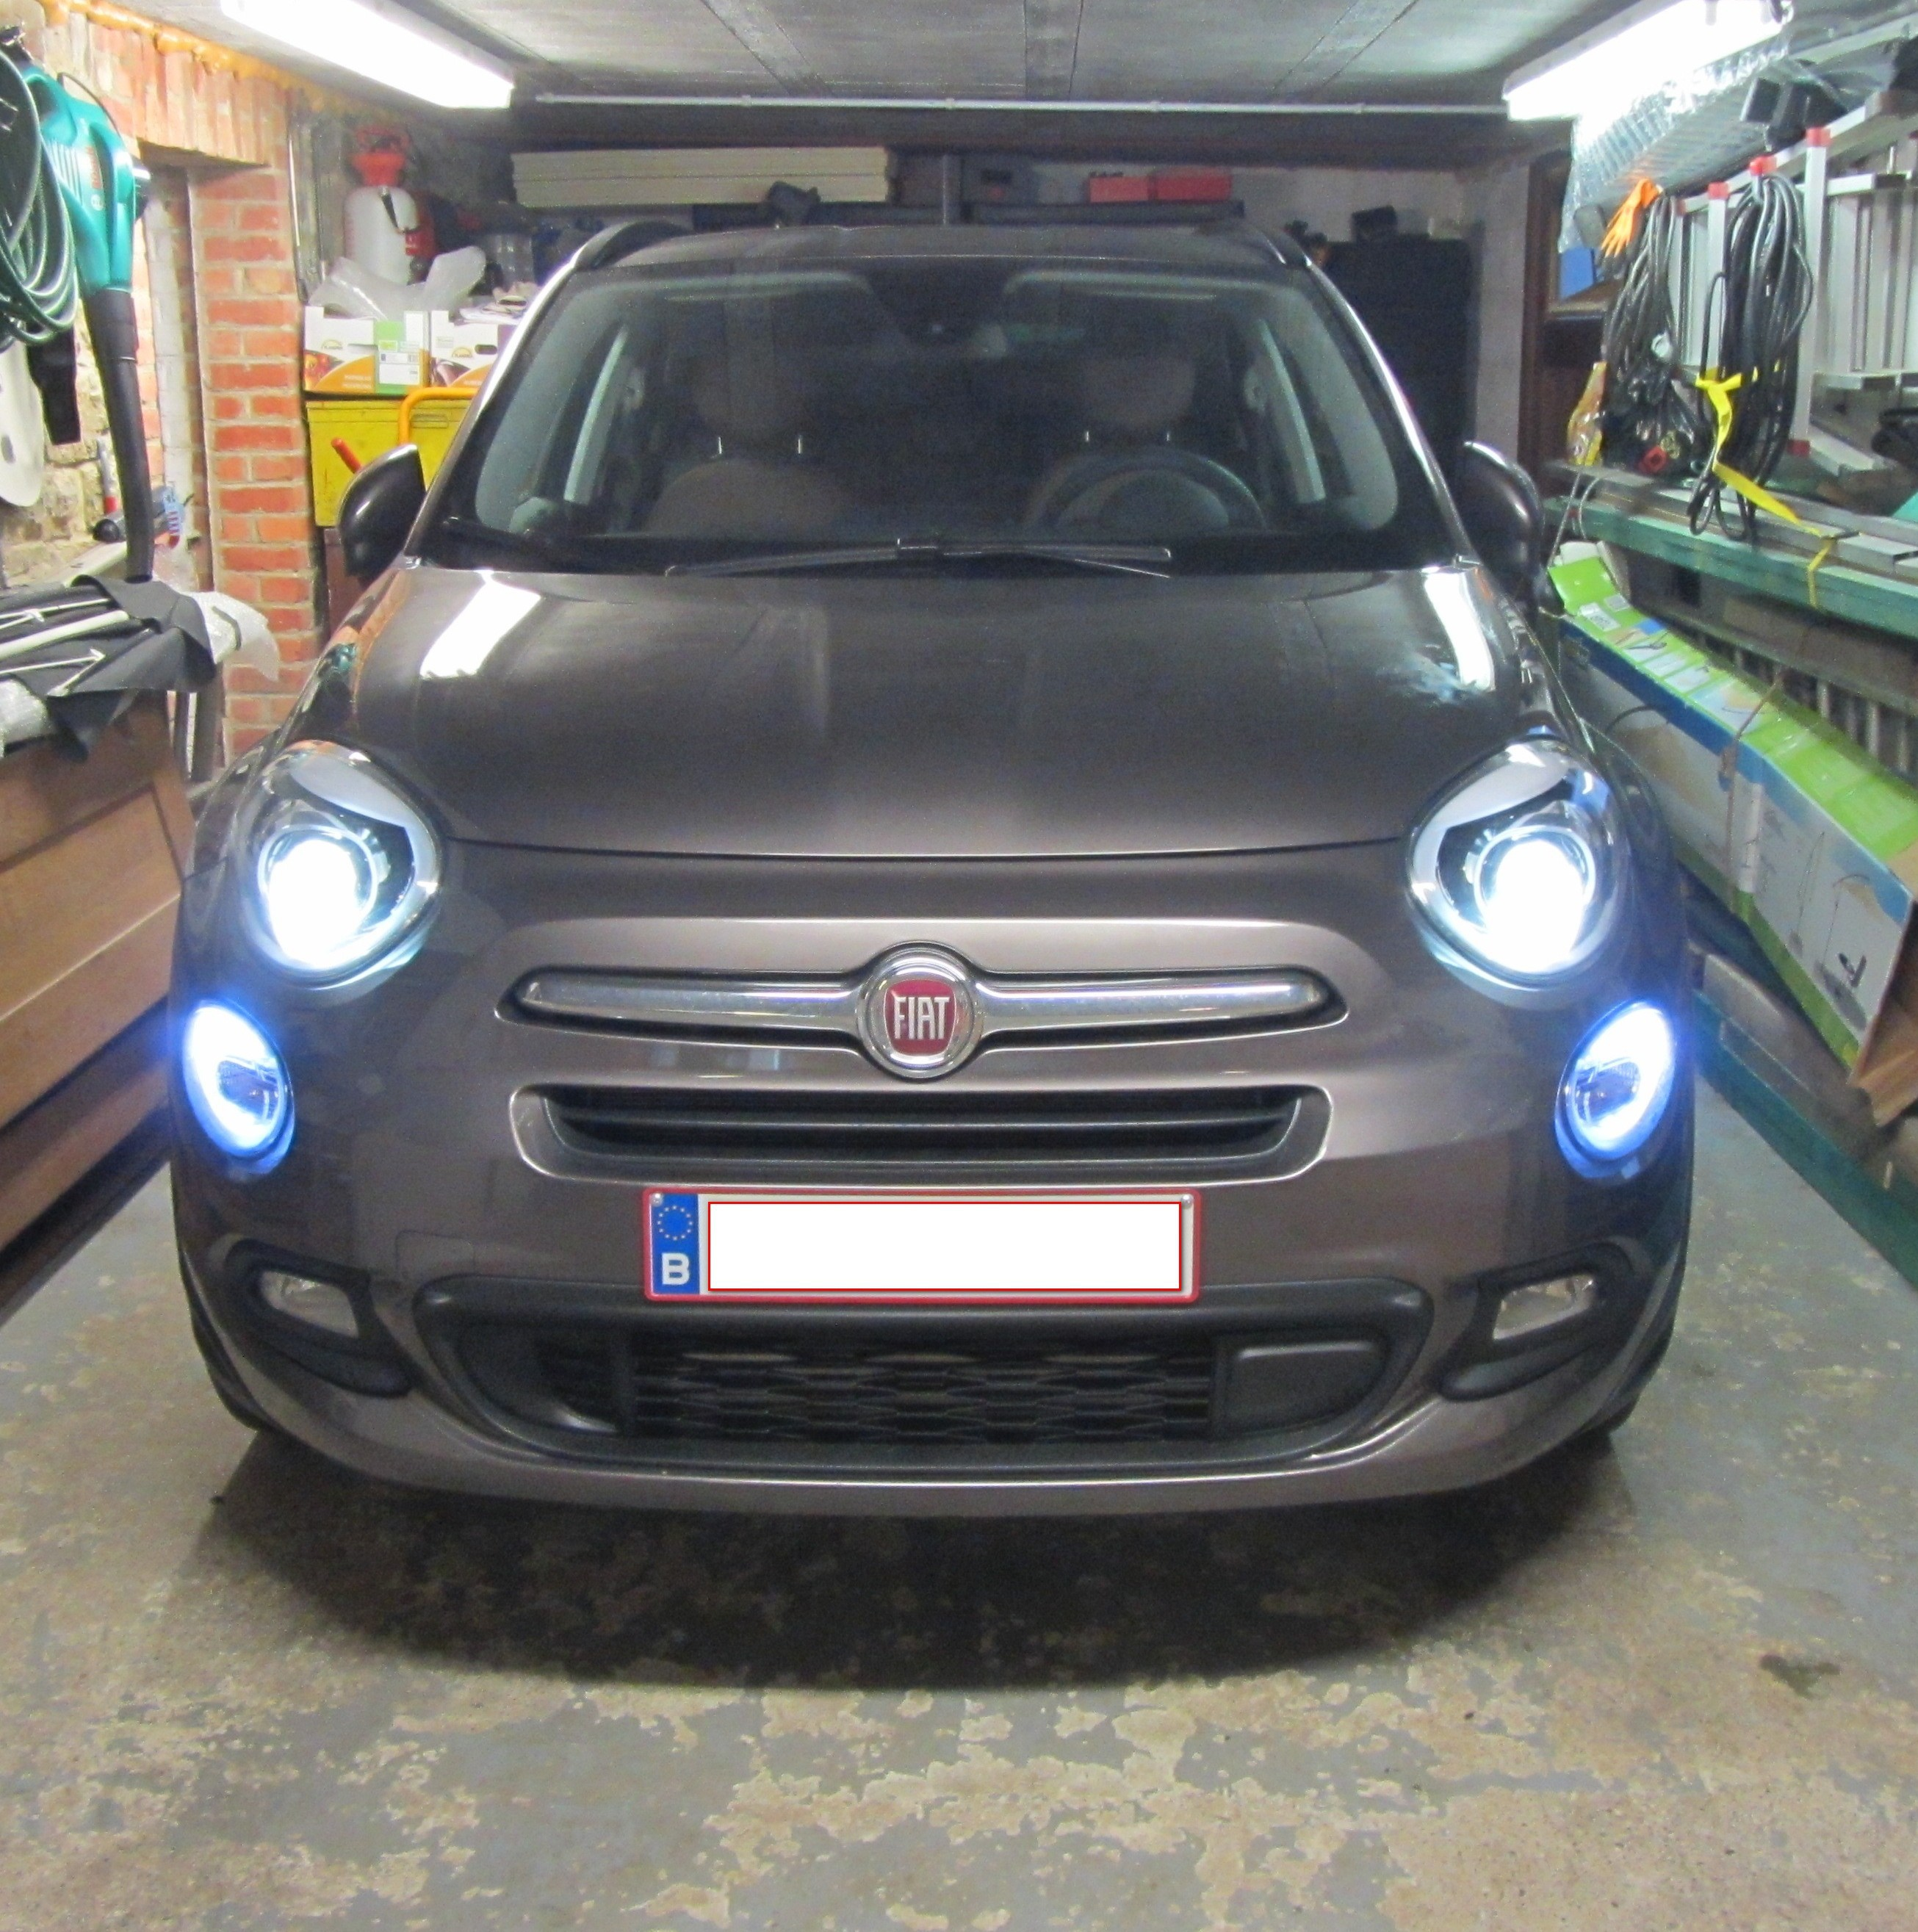 fiat 500x 2014 topic officiel page 90 500 500l 500x fiat forum marques. Black Bedroom Furniture Sets. Home Design Ideas